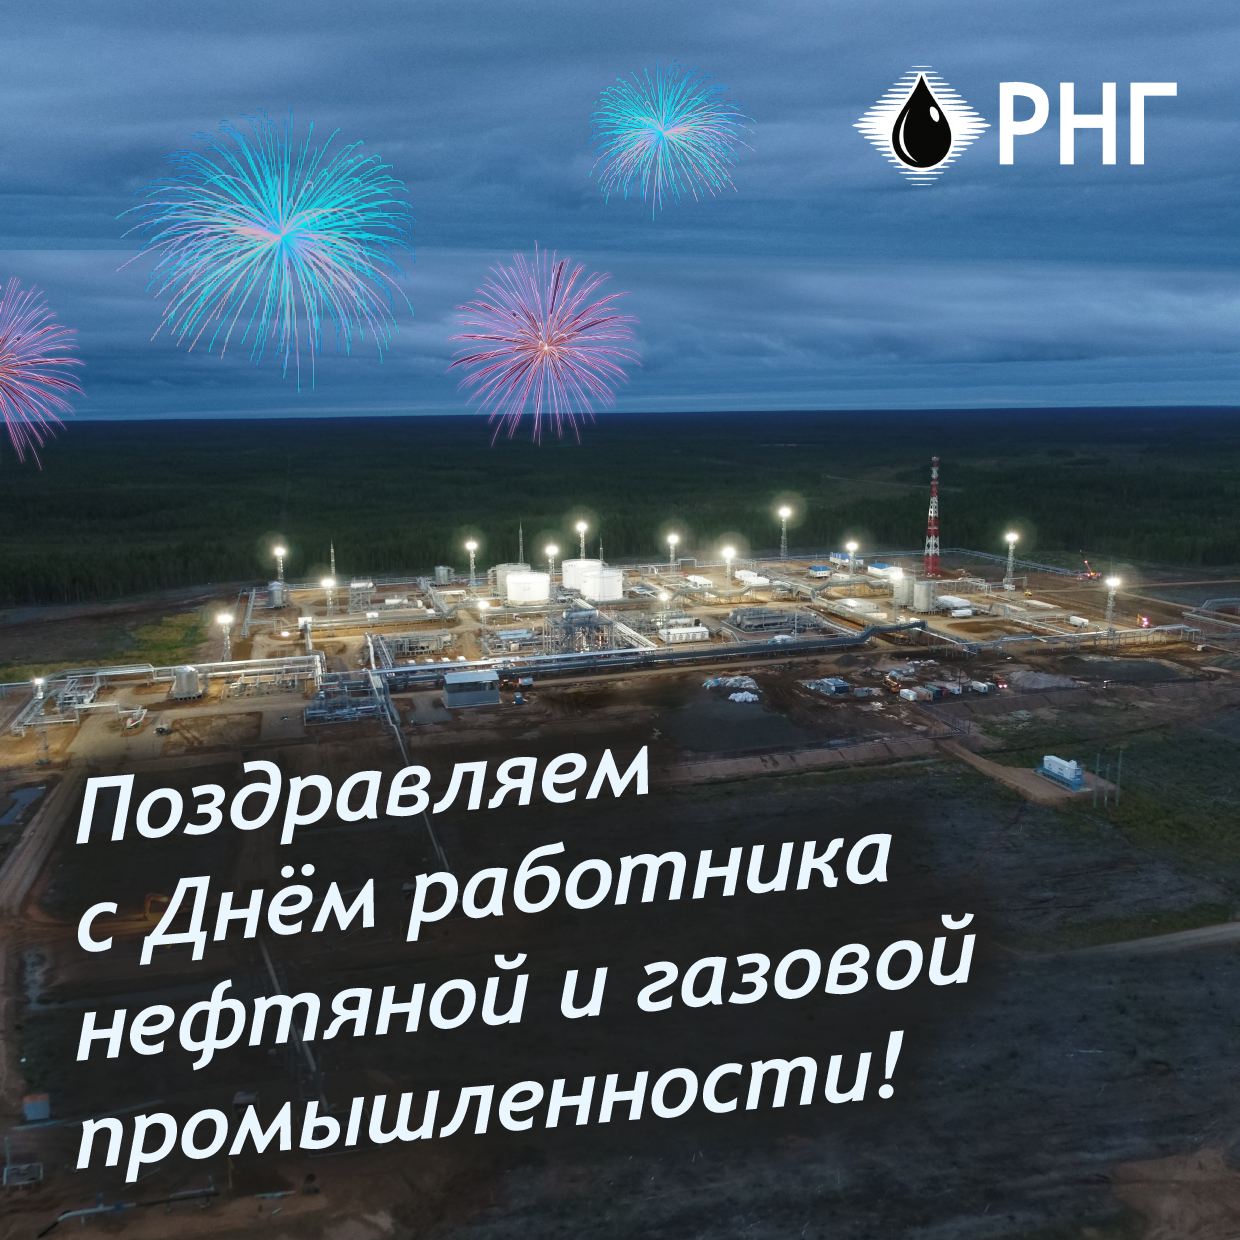 rng-chief-executive-officer-ivan-menshikov-congratulated-colleagues-on-the-oilman-day